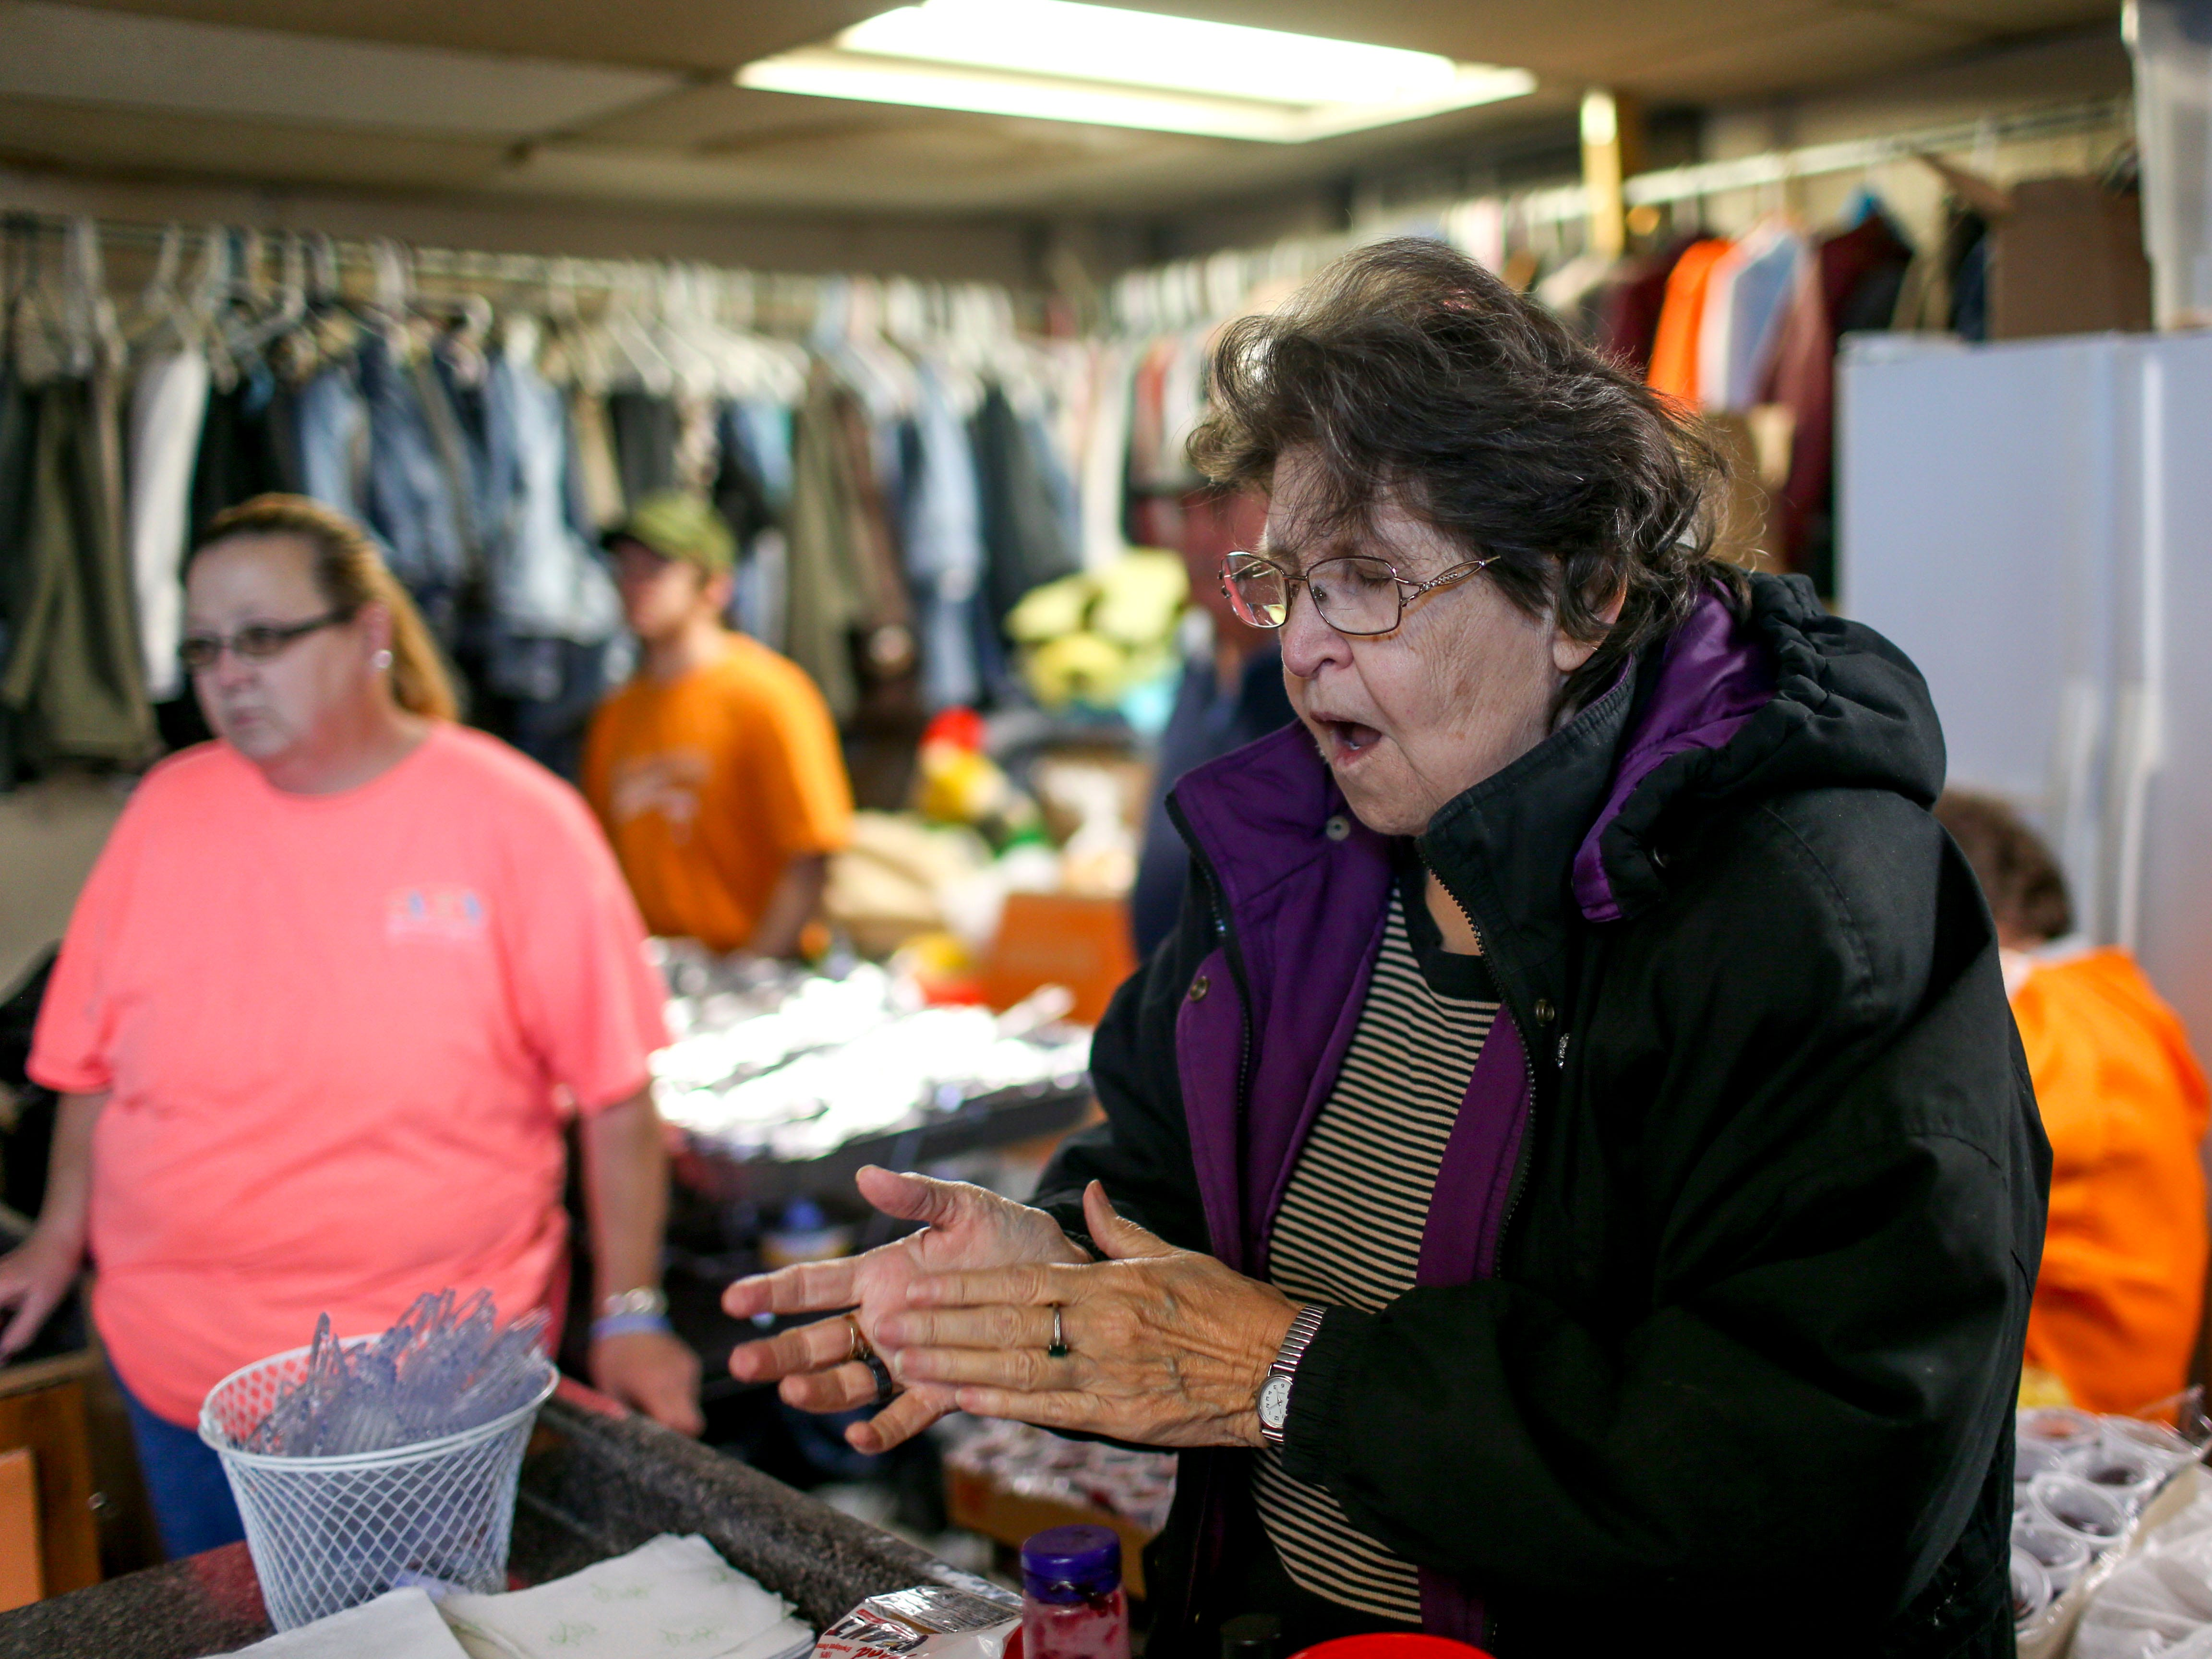 Judith Hindman claps while singing songs of praise at the annual Thanksgiving meal put on by Safe Harbor Day Mission in Jackson, Tenn., on Wednesday, Nov. 21, 2018.